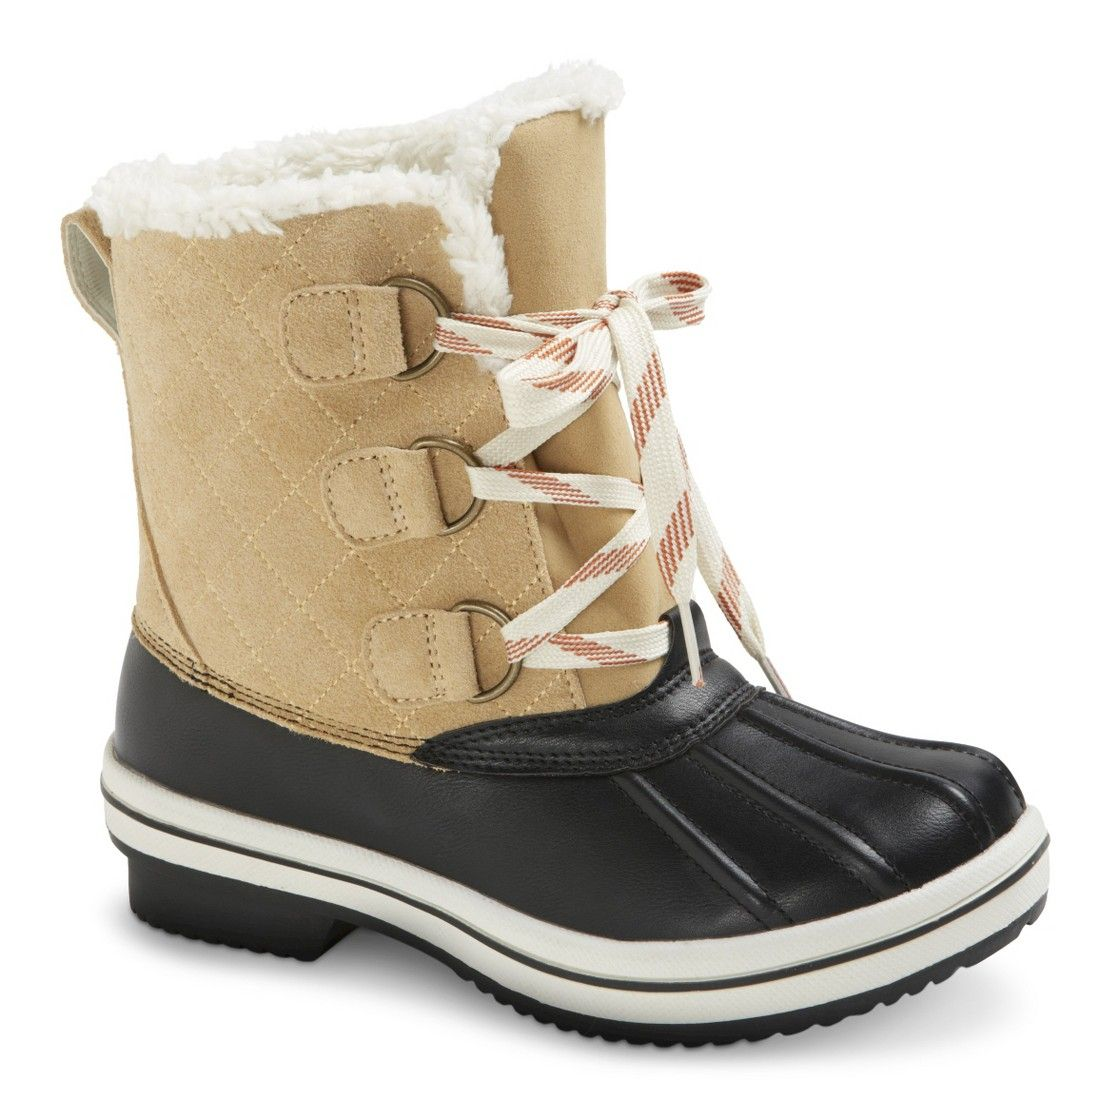 6I6W Sorel Cozy Carnival Boots Womens Dark Mountain Inexpensive Adjustable